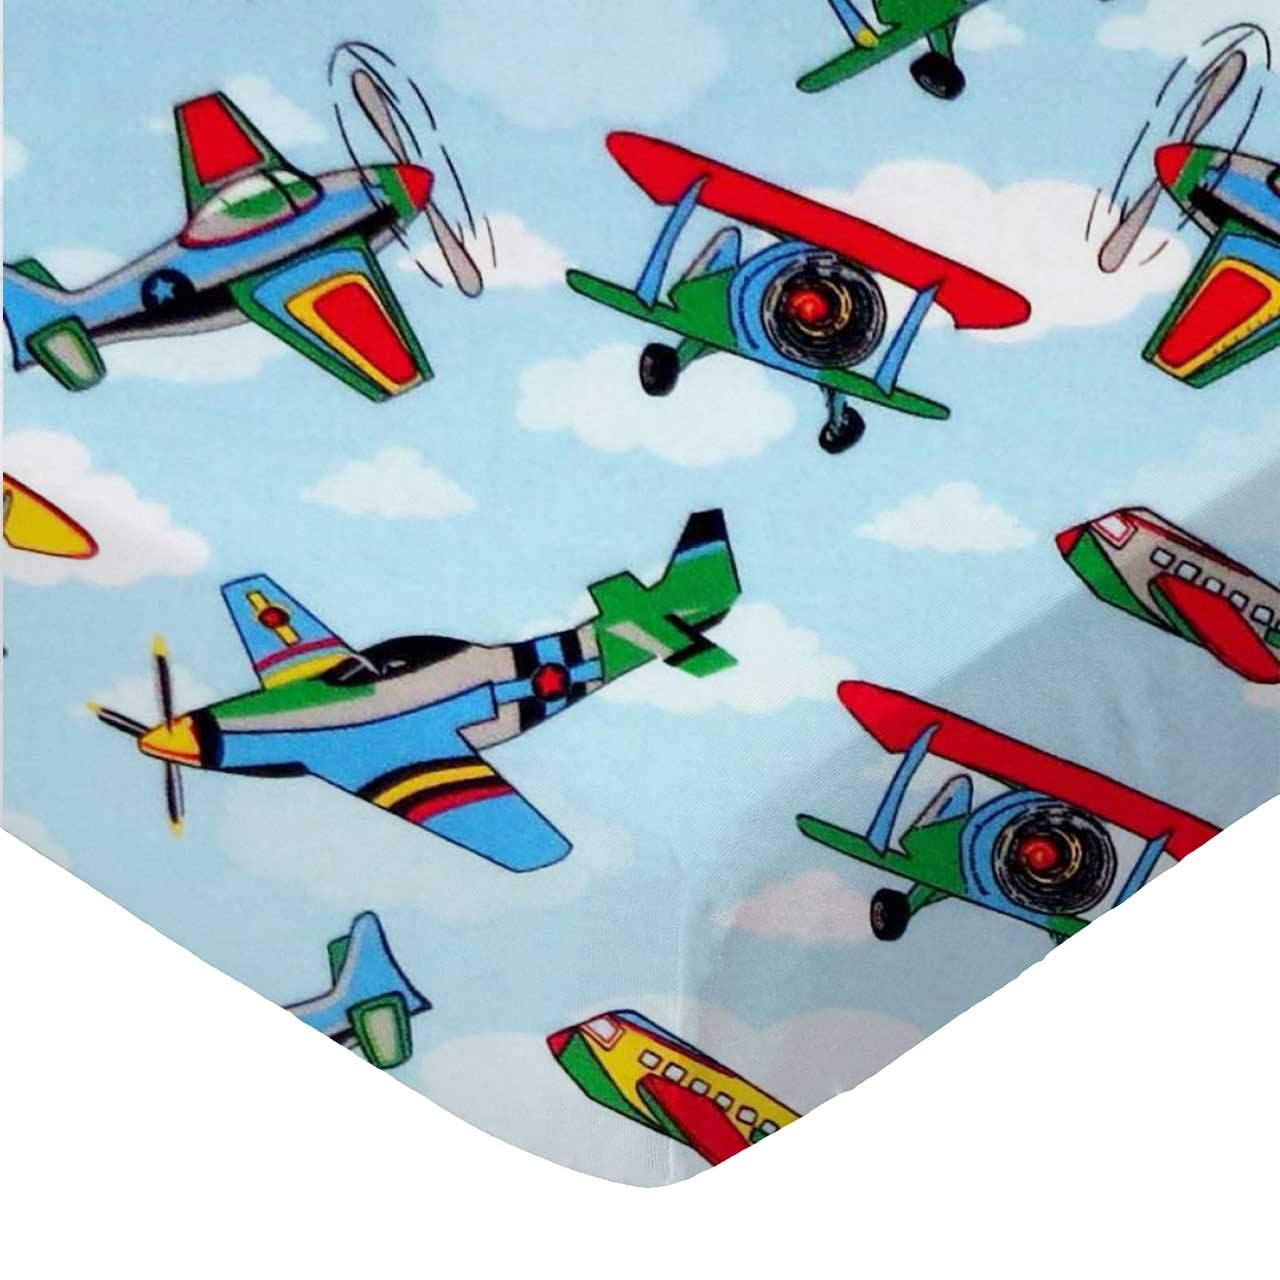 SheetWorld Fitted 100% Cotton Percale Pack N Play Sheet Fits Graco Square Play Yard 36 x 36, Kiddie Airplanes, Made in USA